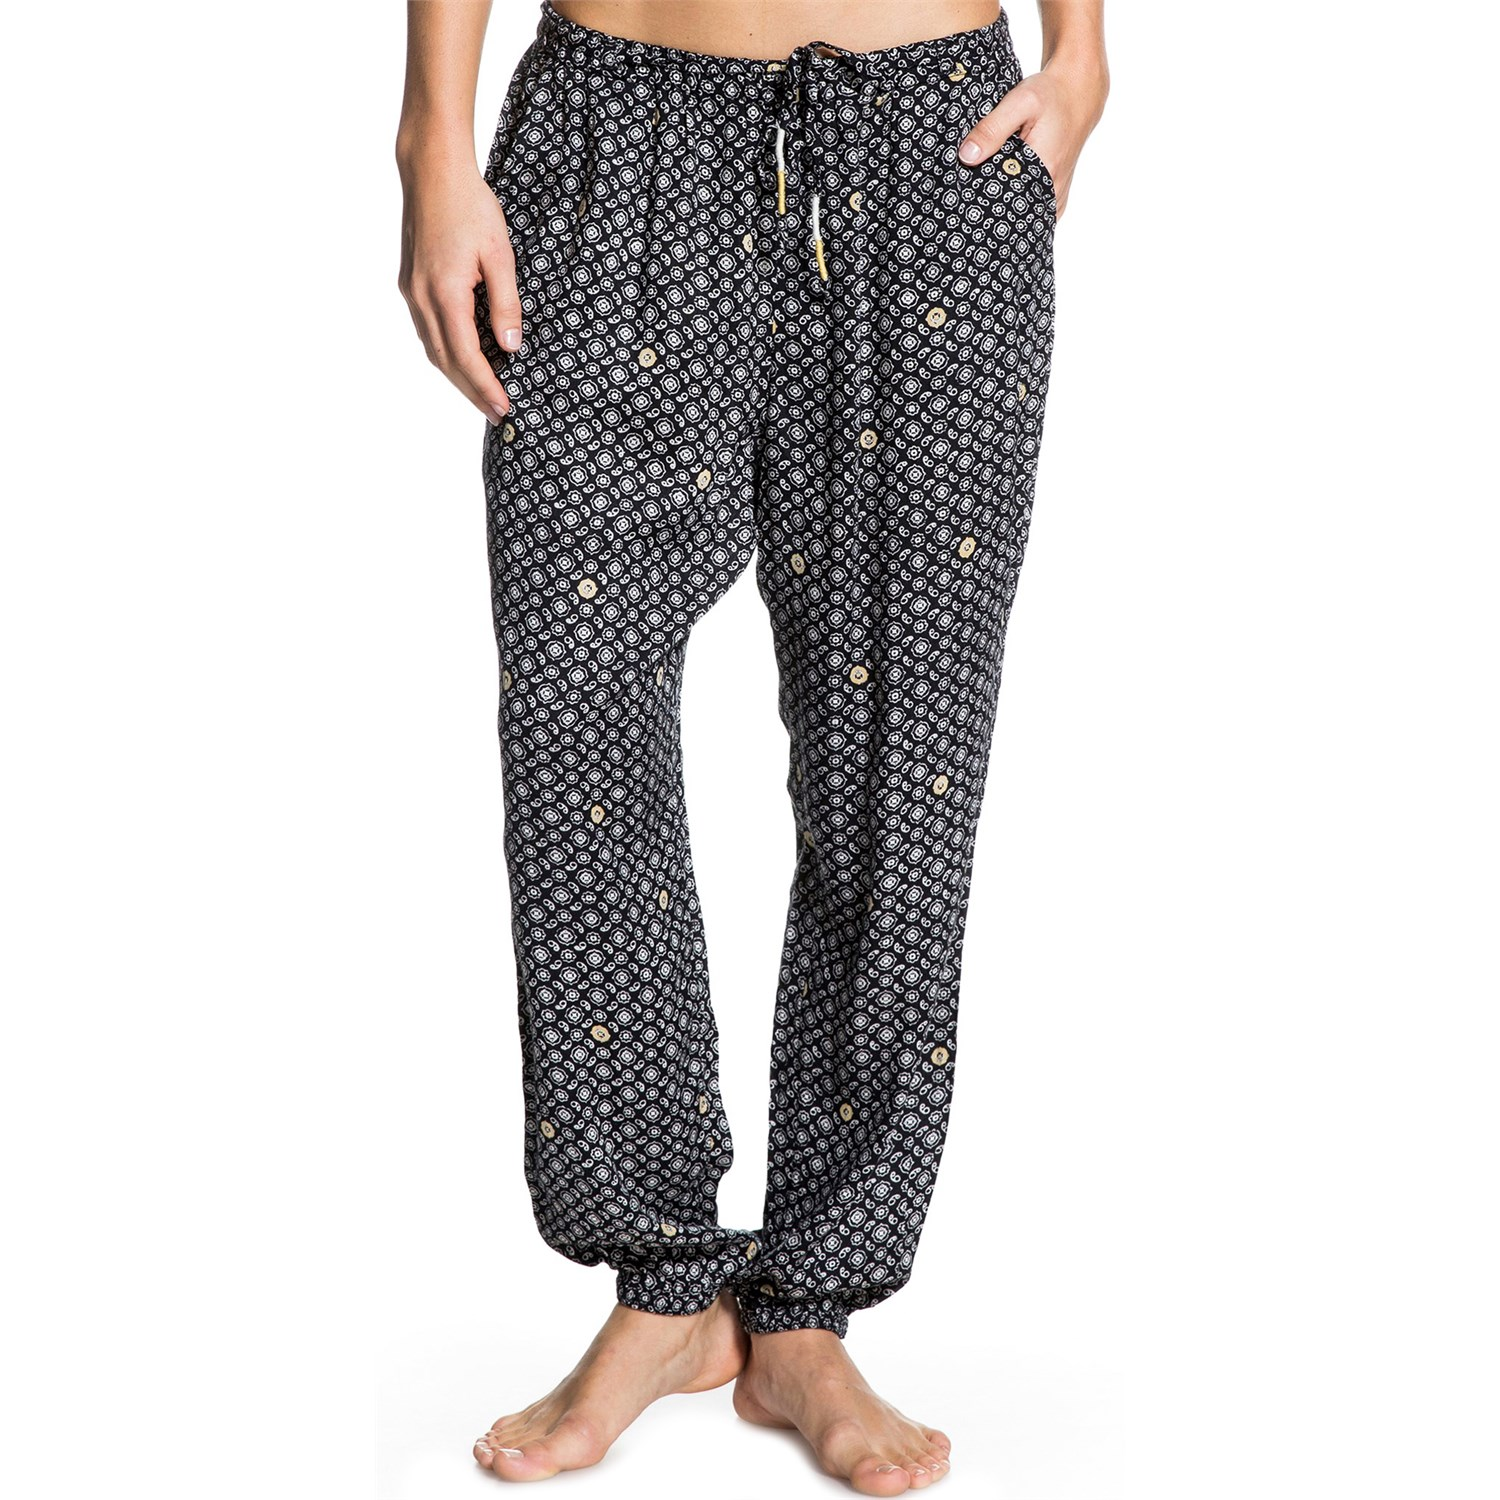 The Boho/Gypsy look is a harem pants favorite among women across the globe. Bold hand-woven prints and bright colors pair beautifully with tank tops, crop tops and peasant style blouses. However, there is so much more to the new cheap harem pants look than just this!